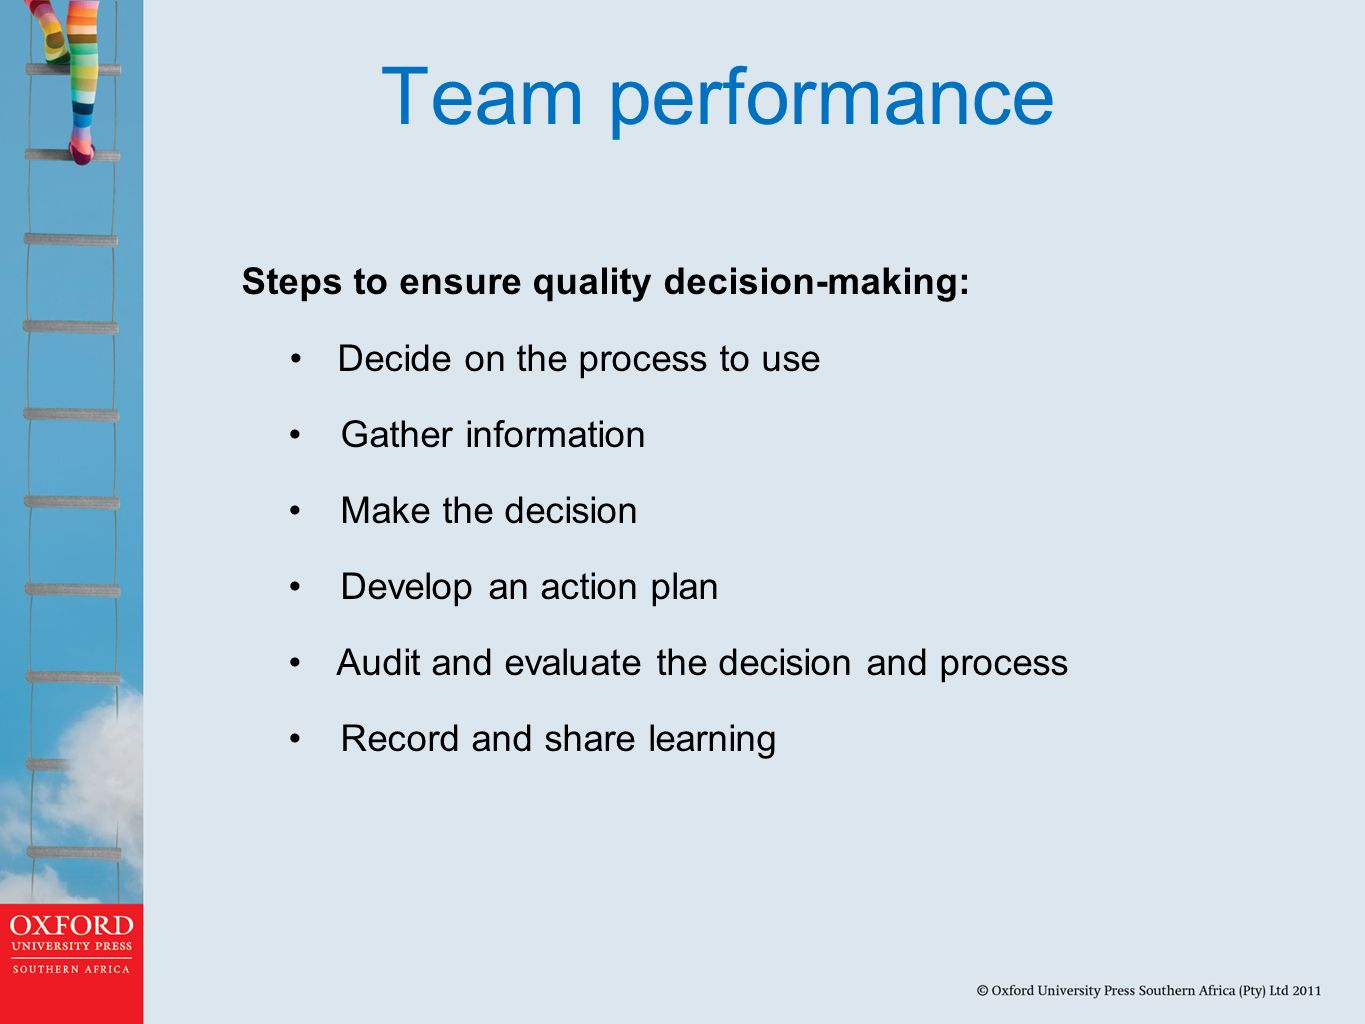 how to develop a team performance plan